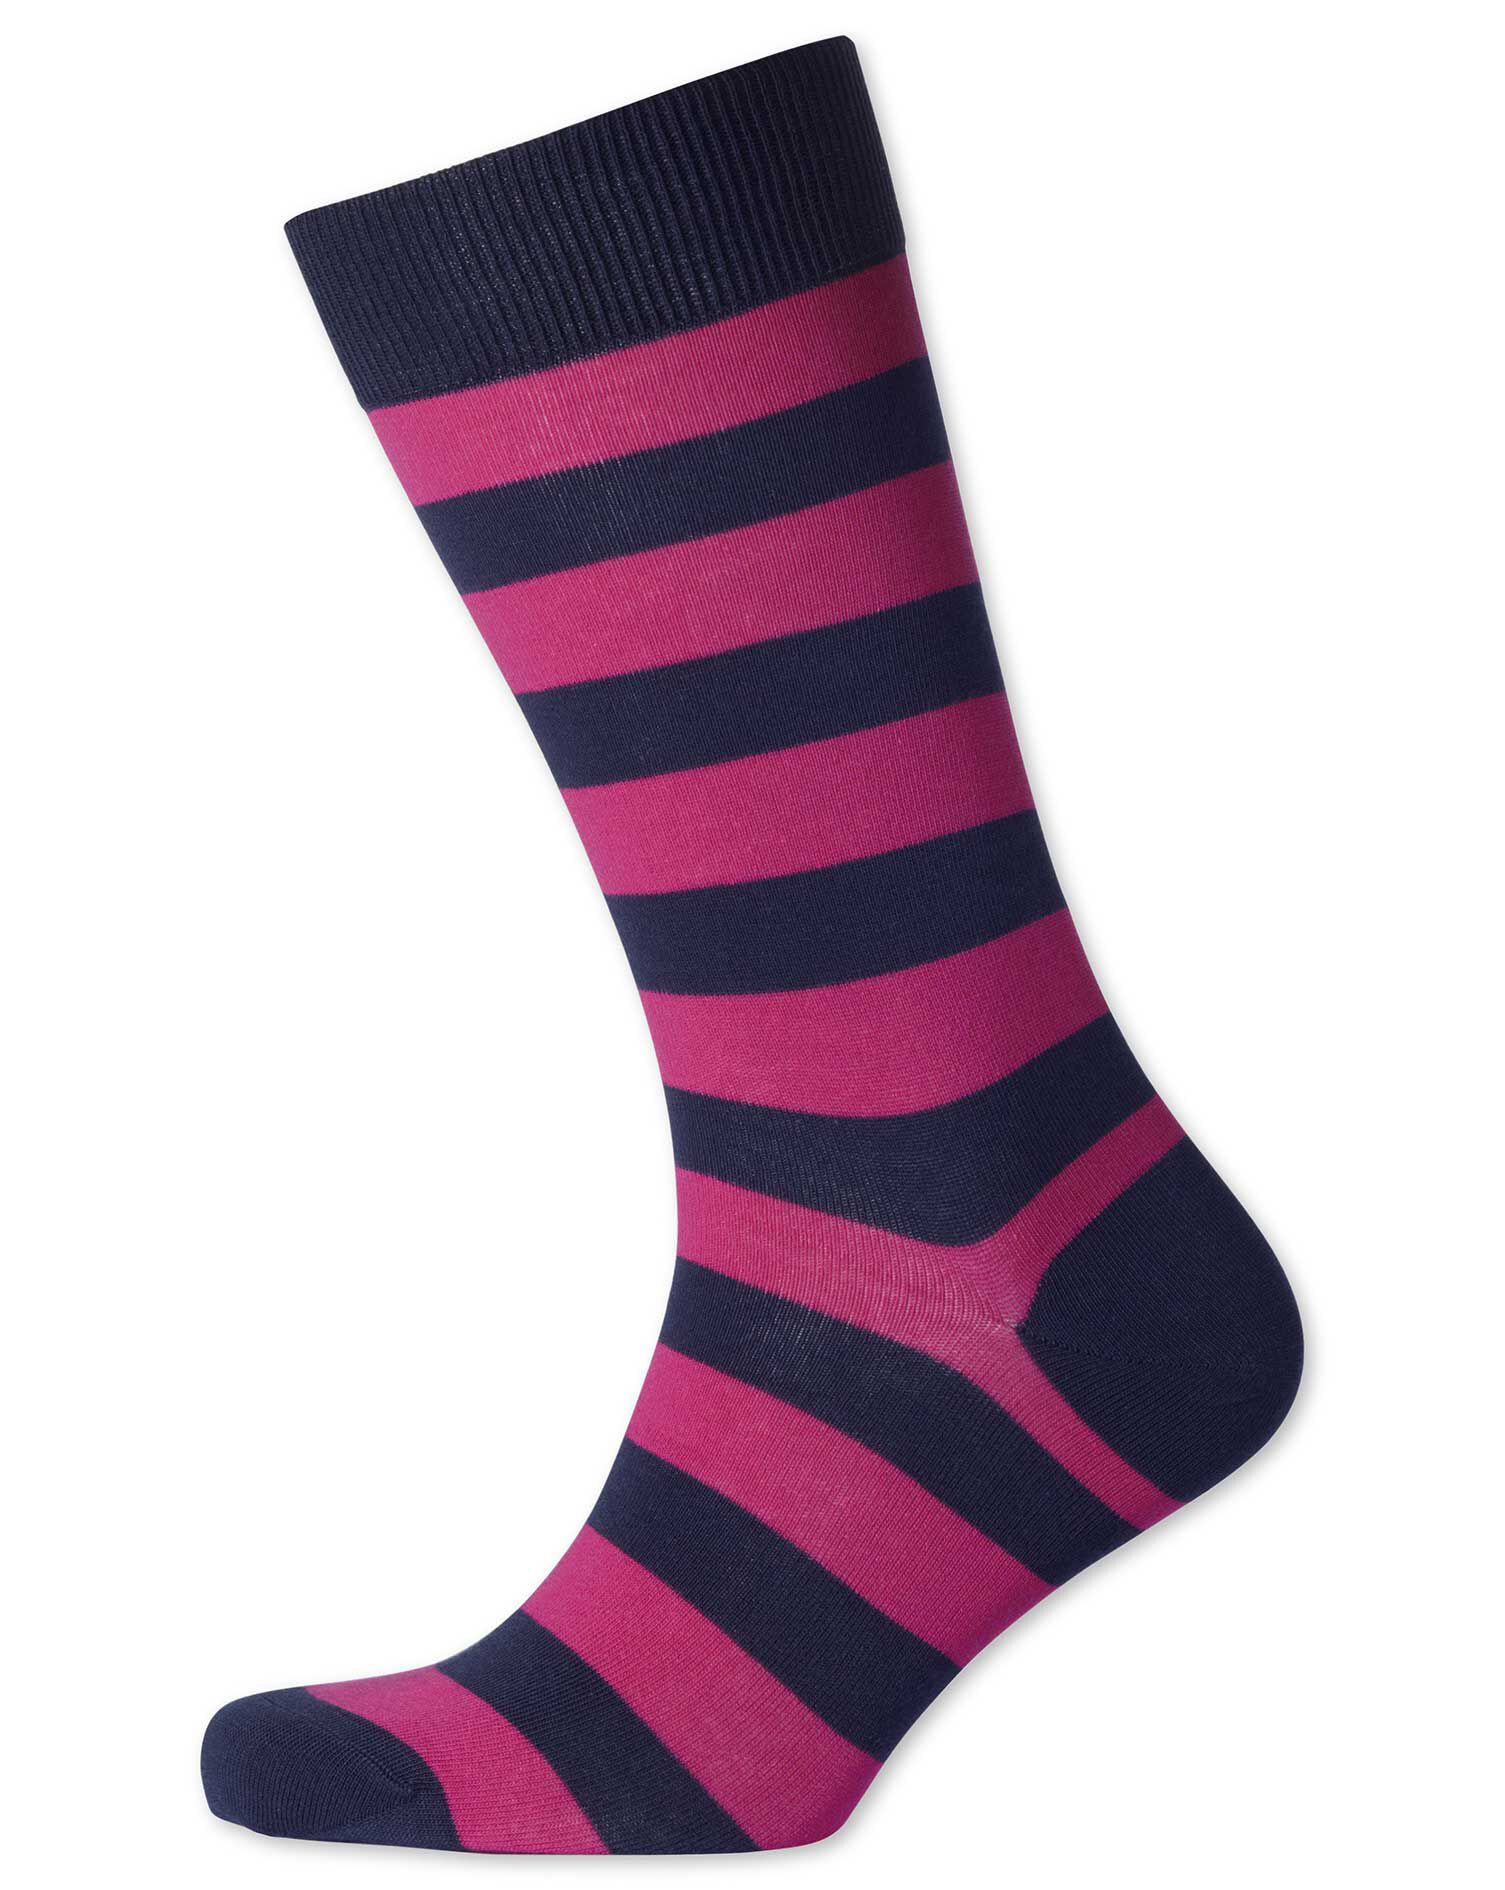 Navy and Pink Wide Stripe Socks Size Medium by Charles Tyrwhitt